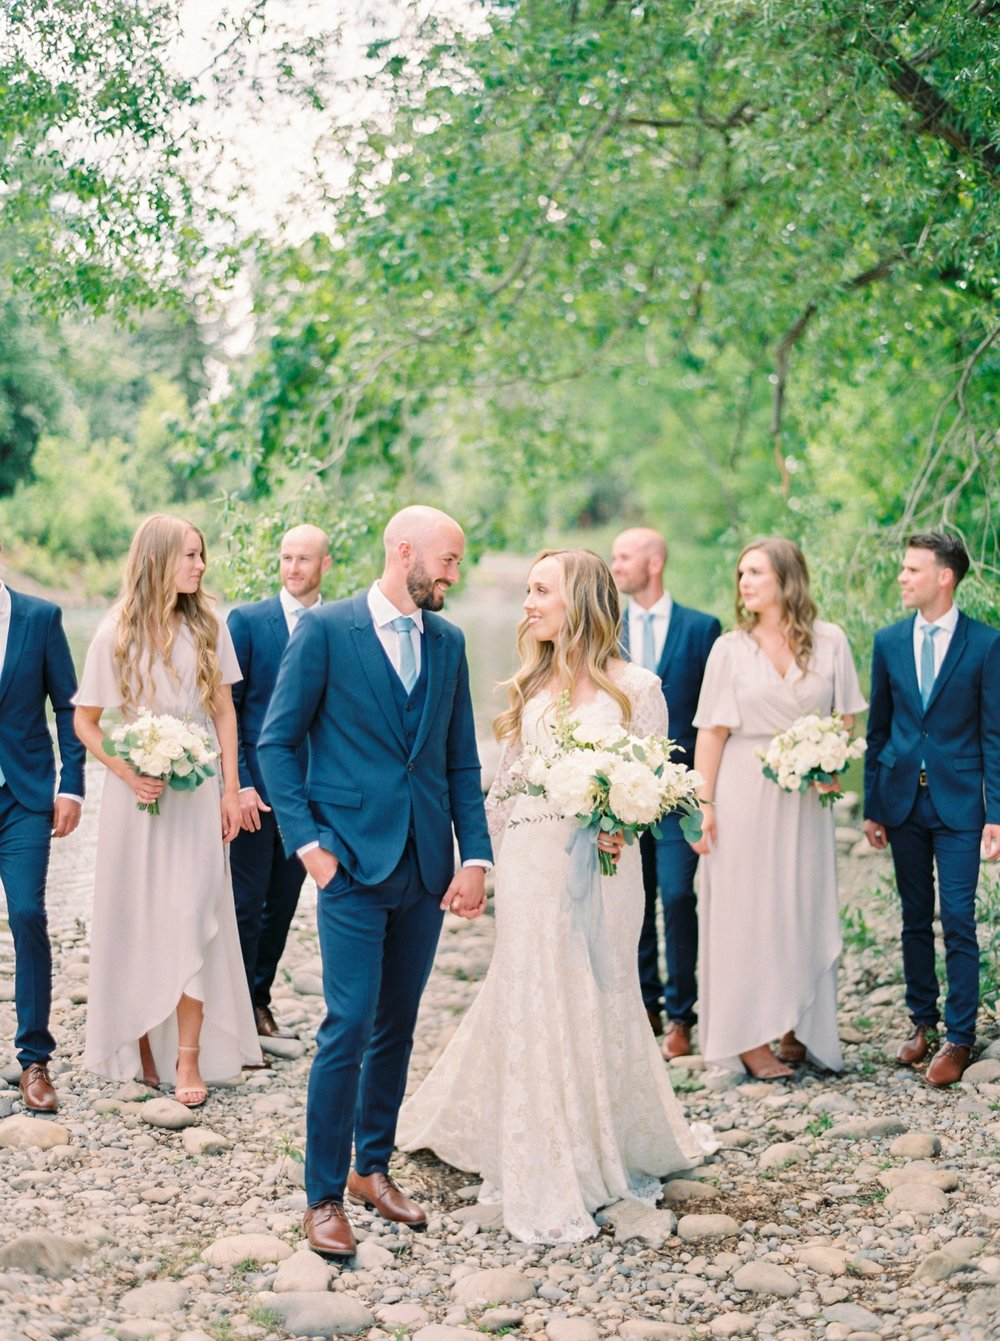 Calgary wedding photographers | The Gathered Farm Wedding | Justine milton fine art film photographer | bride and bridesmaids portraits nude dresses white peony bouquets navy blue groomsmen suits